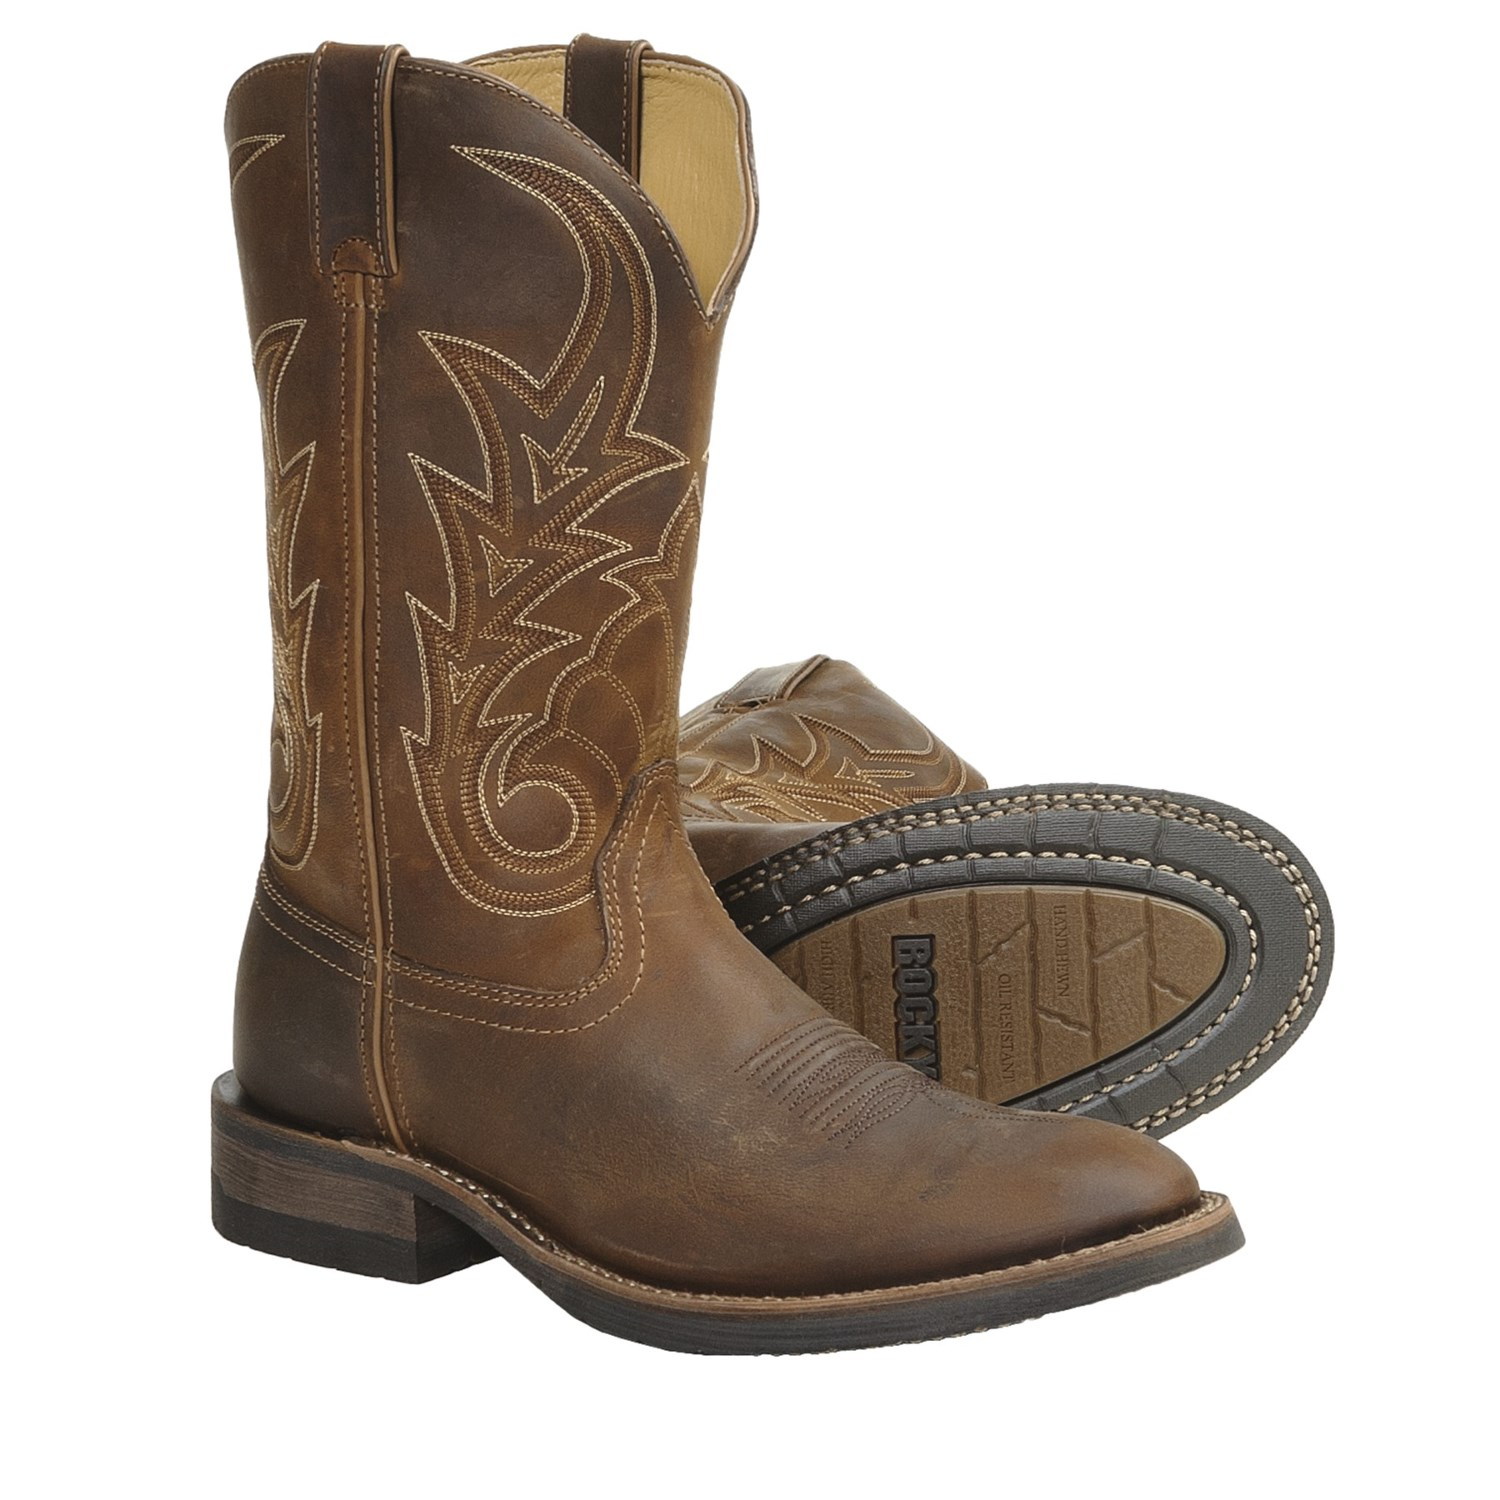 cowboy boots dec 30 2012 10 05 29 picture gallery